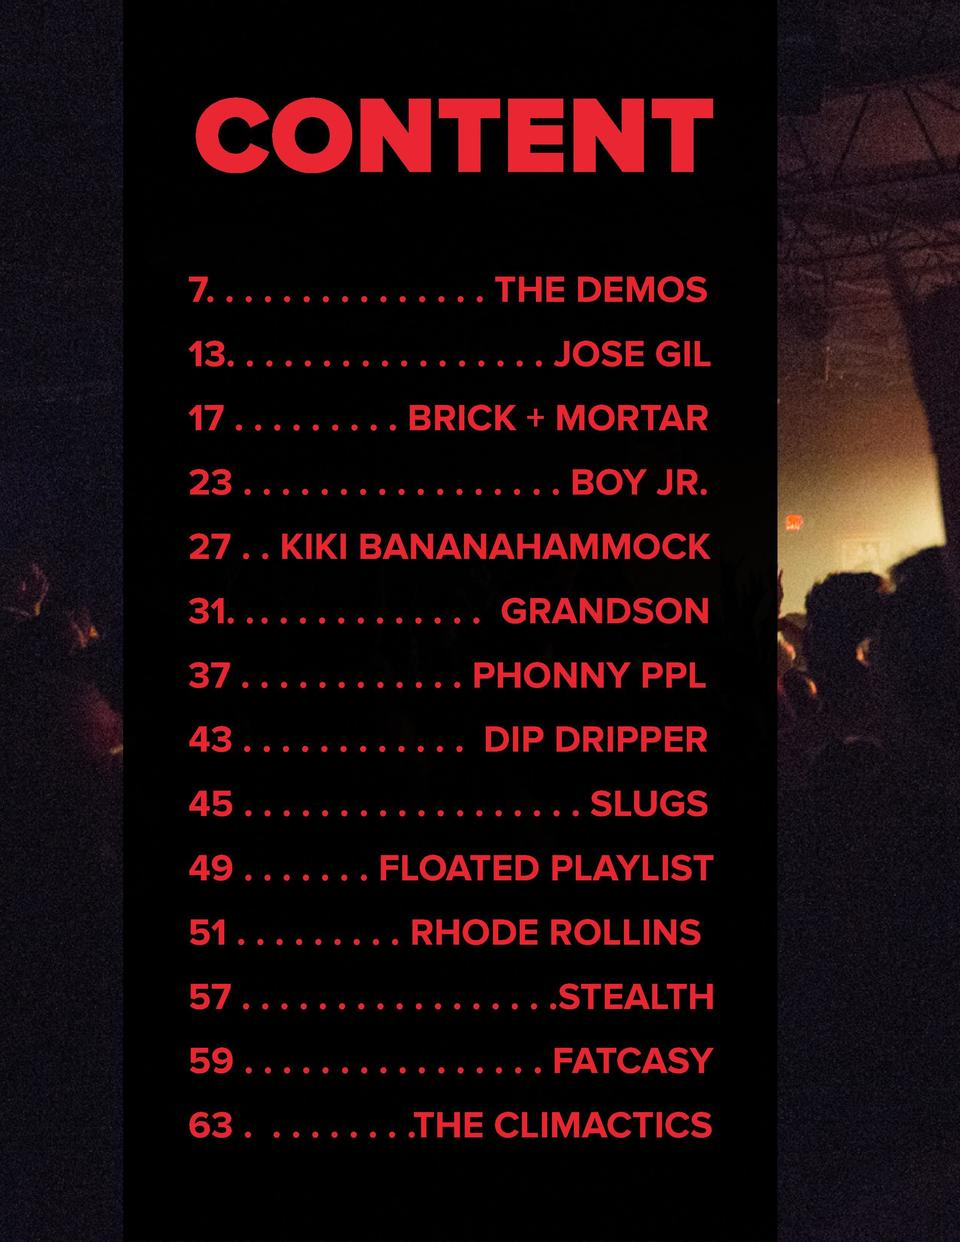 CONTENT 7. . . . . . . . . . . . . . . THE DEMOS 13. . . . . . . . . . . . . . . . . JOSE GIL 17 . . . . . . . . . BRICK  ...